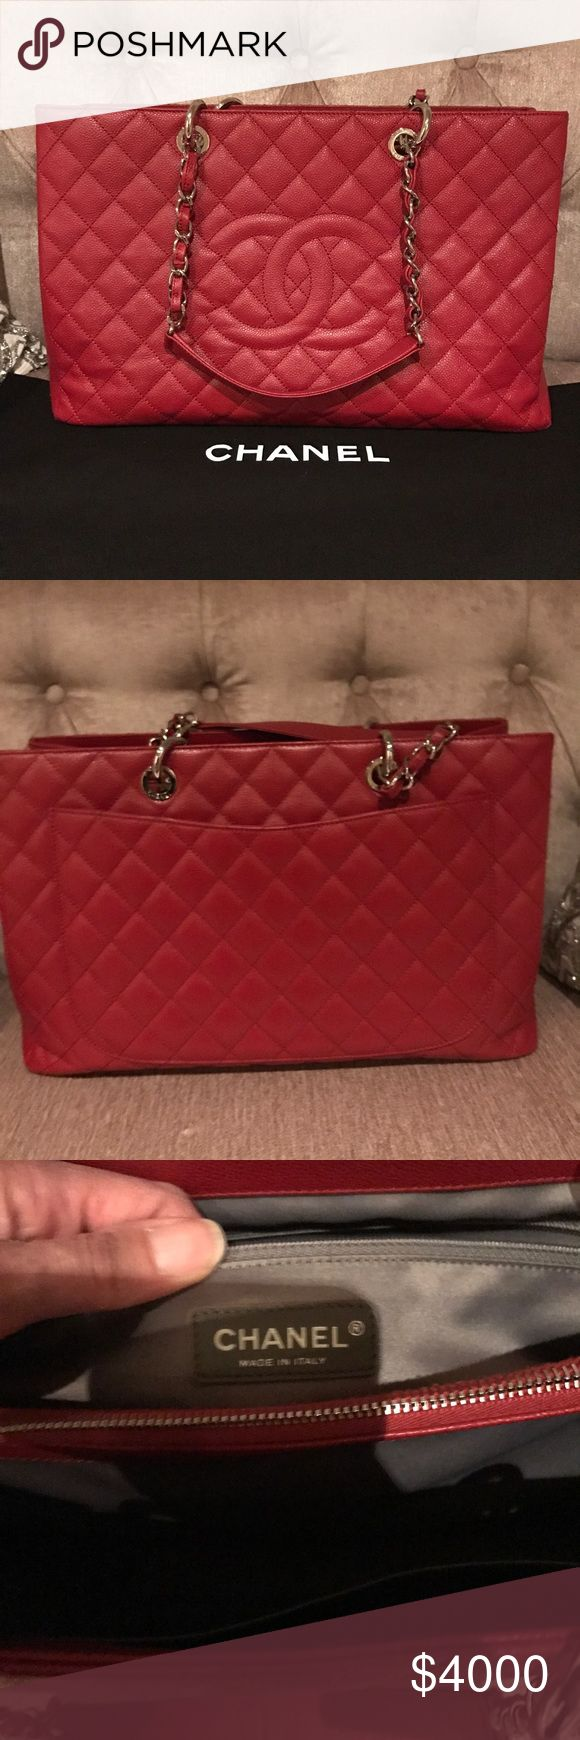 AUTHENTIC Chanel GST XL LIPSTICK RED 💄CHANEL GST XL-DISONTINUED! Great condition! No stains or pen marks! Minor rubbing on corner. Comes with dust bag. I will send additional pics via email to interested buyers.. MUST have buying and/or selling history!!! CHANEL Bags Shoulder Bags